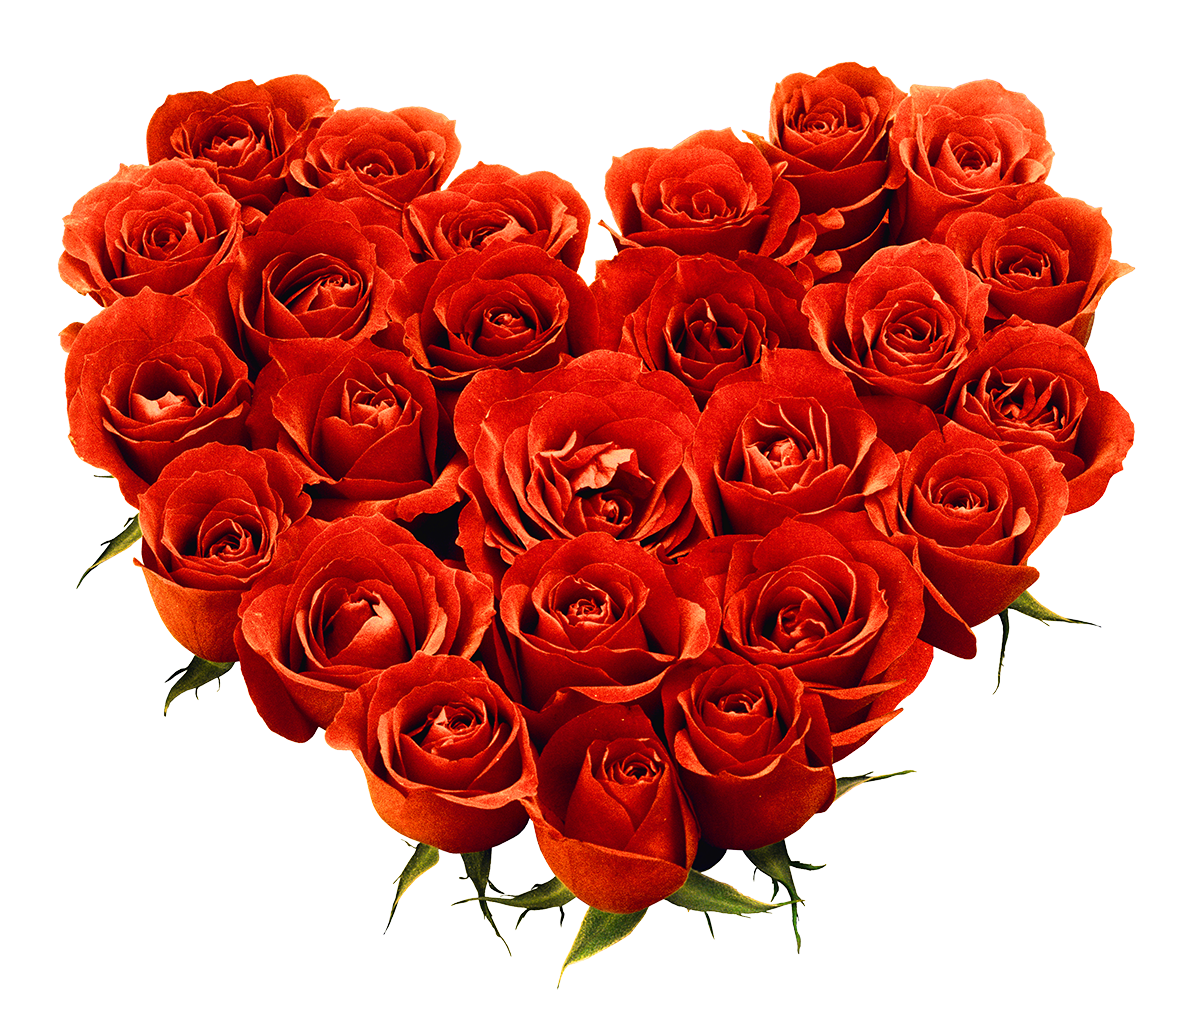 Rose Bunch Transparent PNG Image